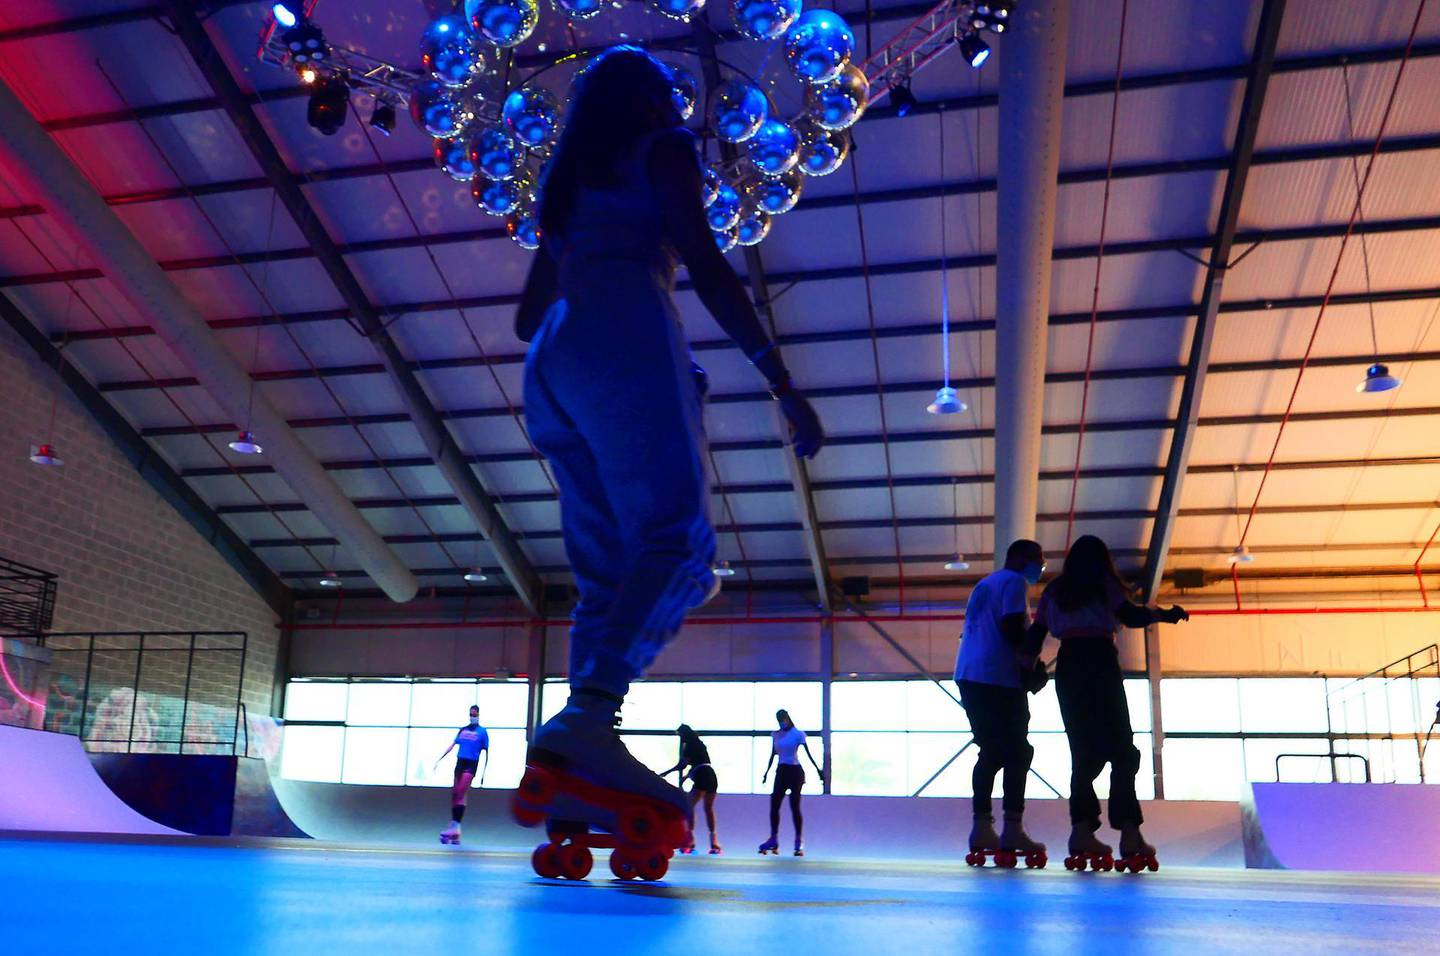 People doing roller skating at the RollDXB roller disco which opens at Shed 3 Marina Cubes Street, Dubai Maritime City, Port Rashid, Bur Dubai on April 25,2021. (Pawan Singh/The National). Story by Sophie Prideaux